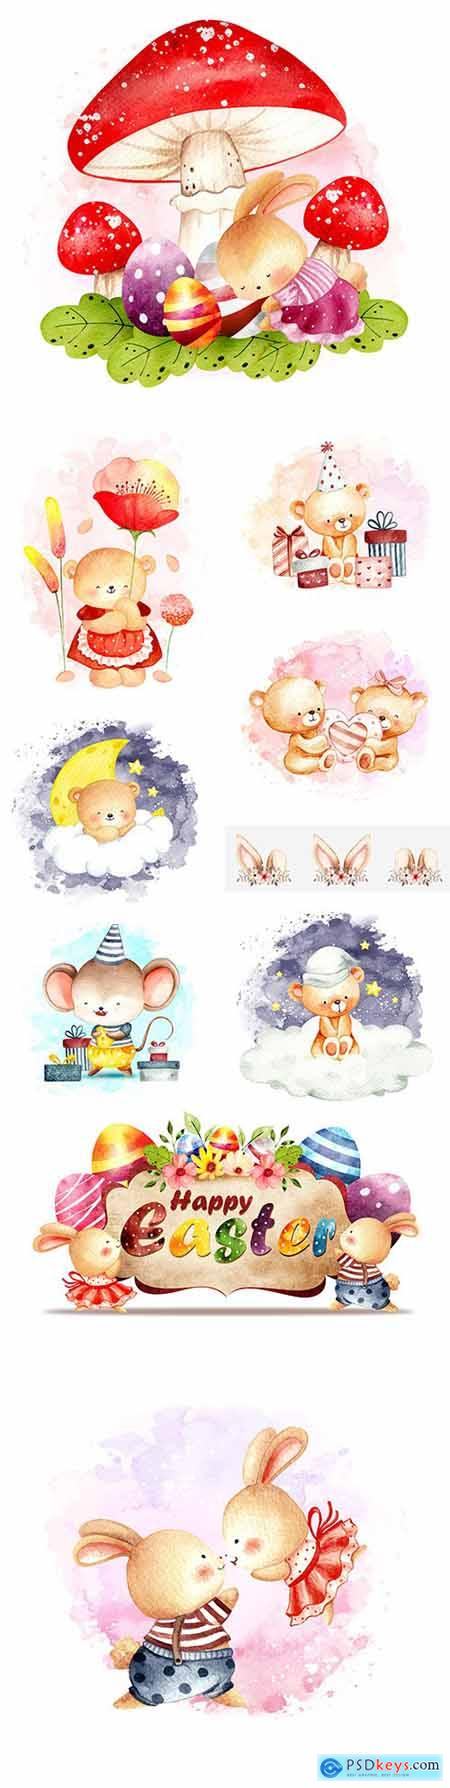 Teddy bear and bunny watercolor illustrations